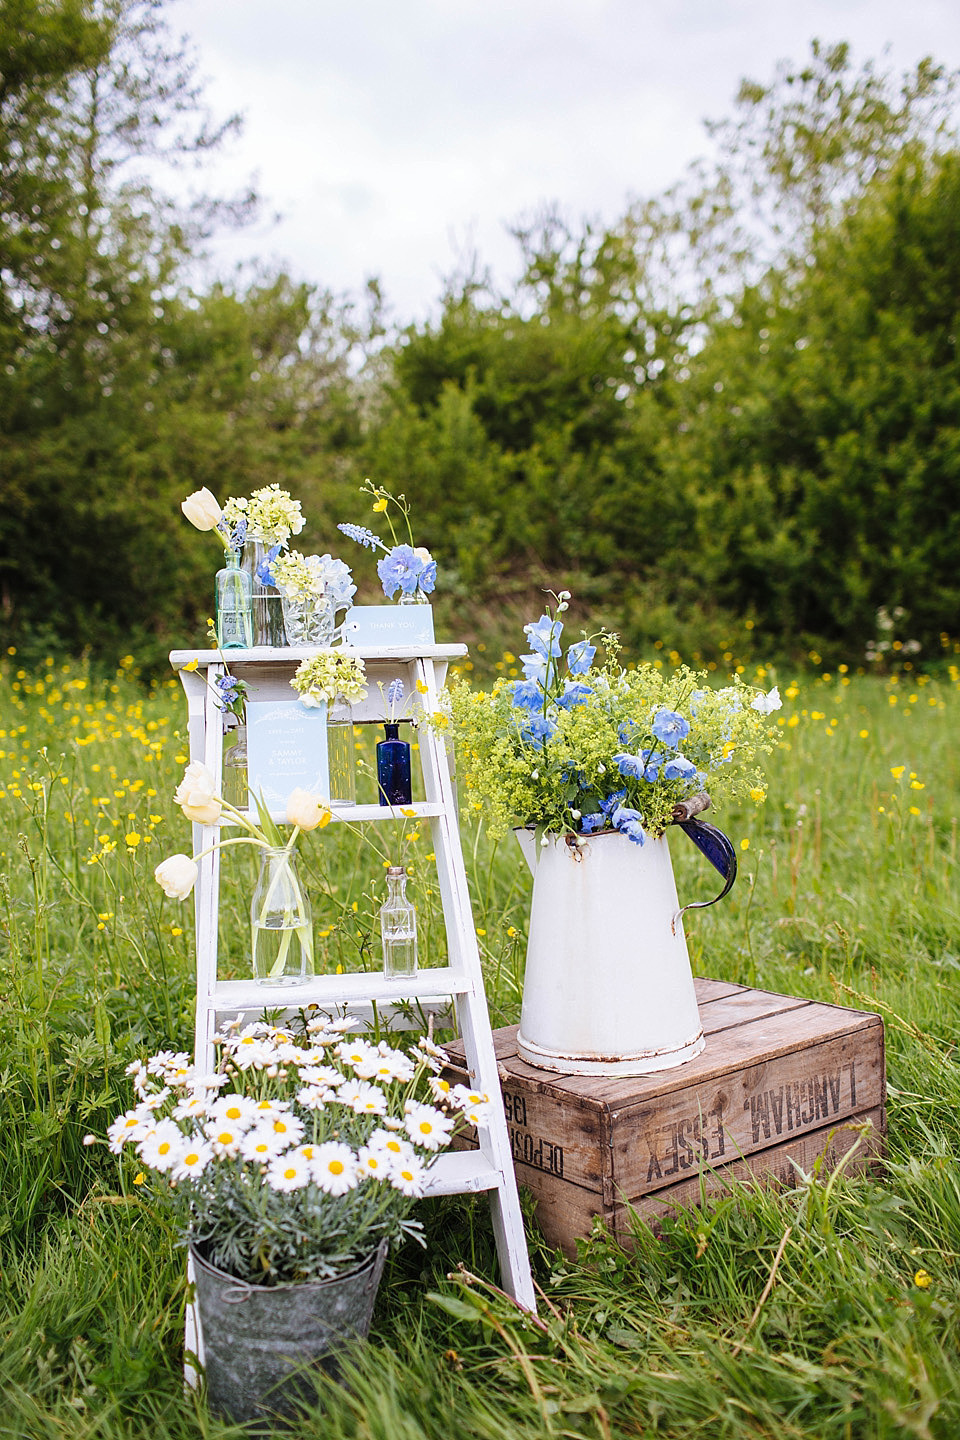 Late Spring/Early Summer Rustic Outdoor Wedding ...